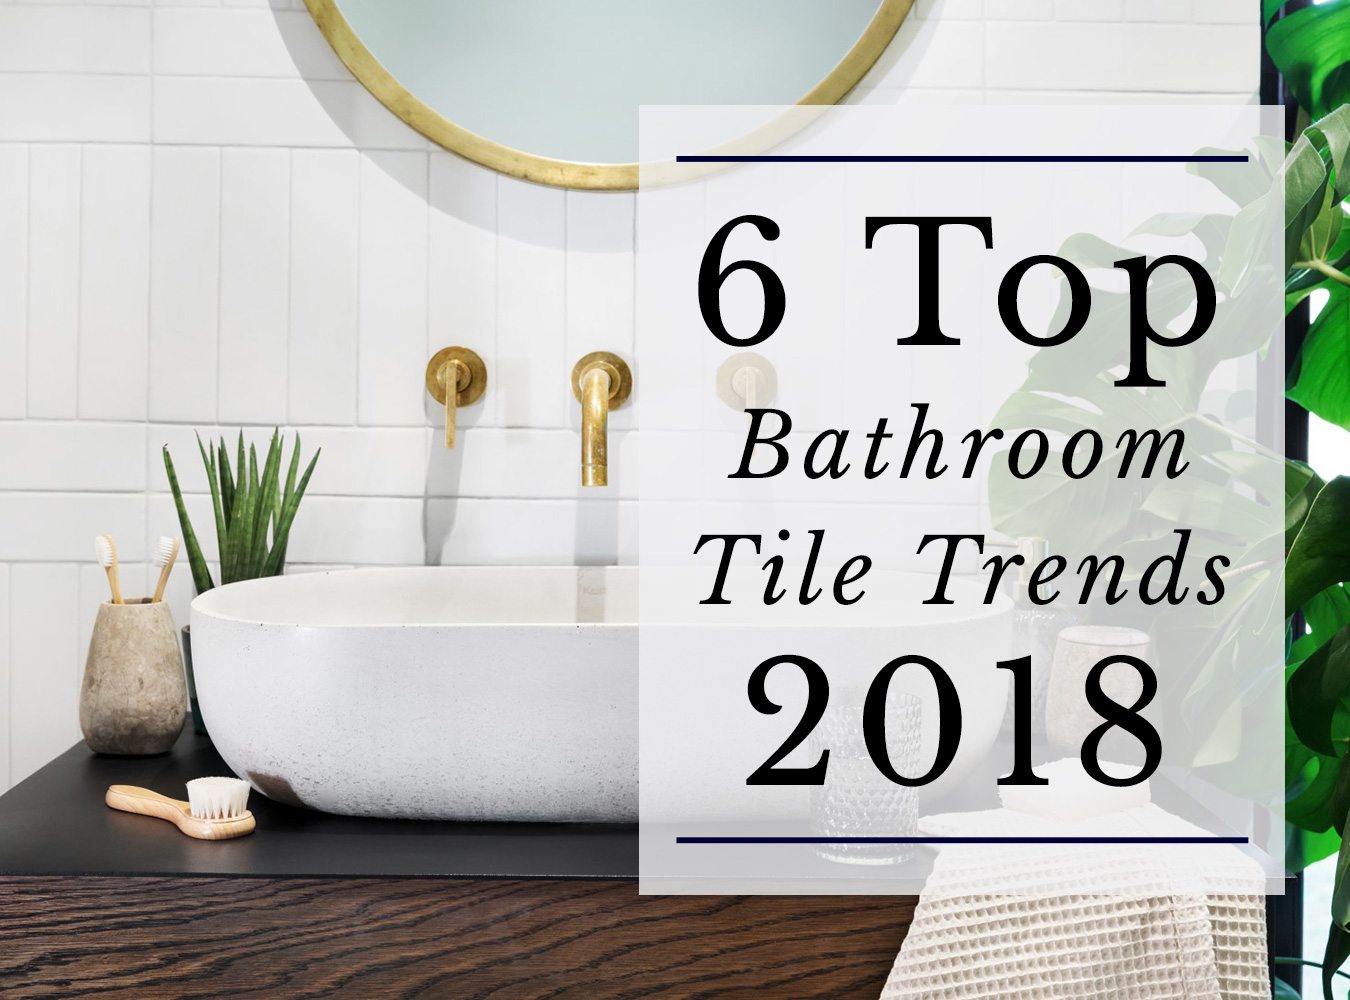 The 6 top bathroom tile trends of 2018 for Modern bathroom tile trends